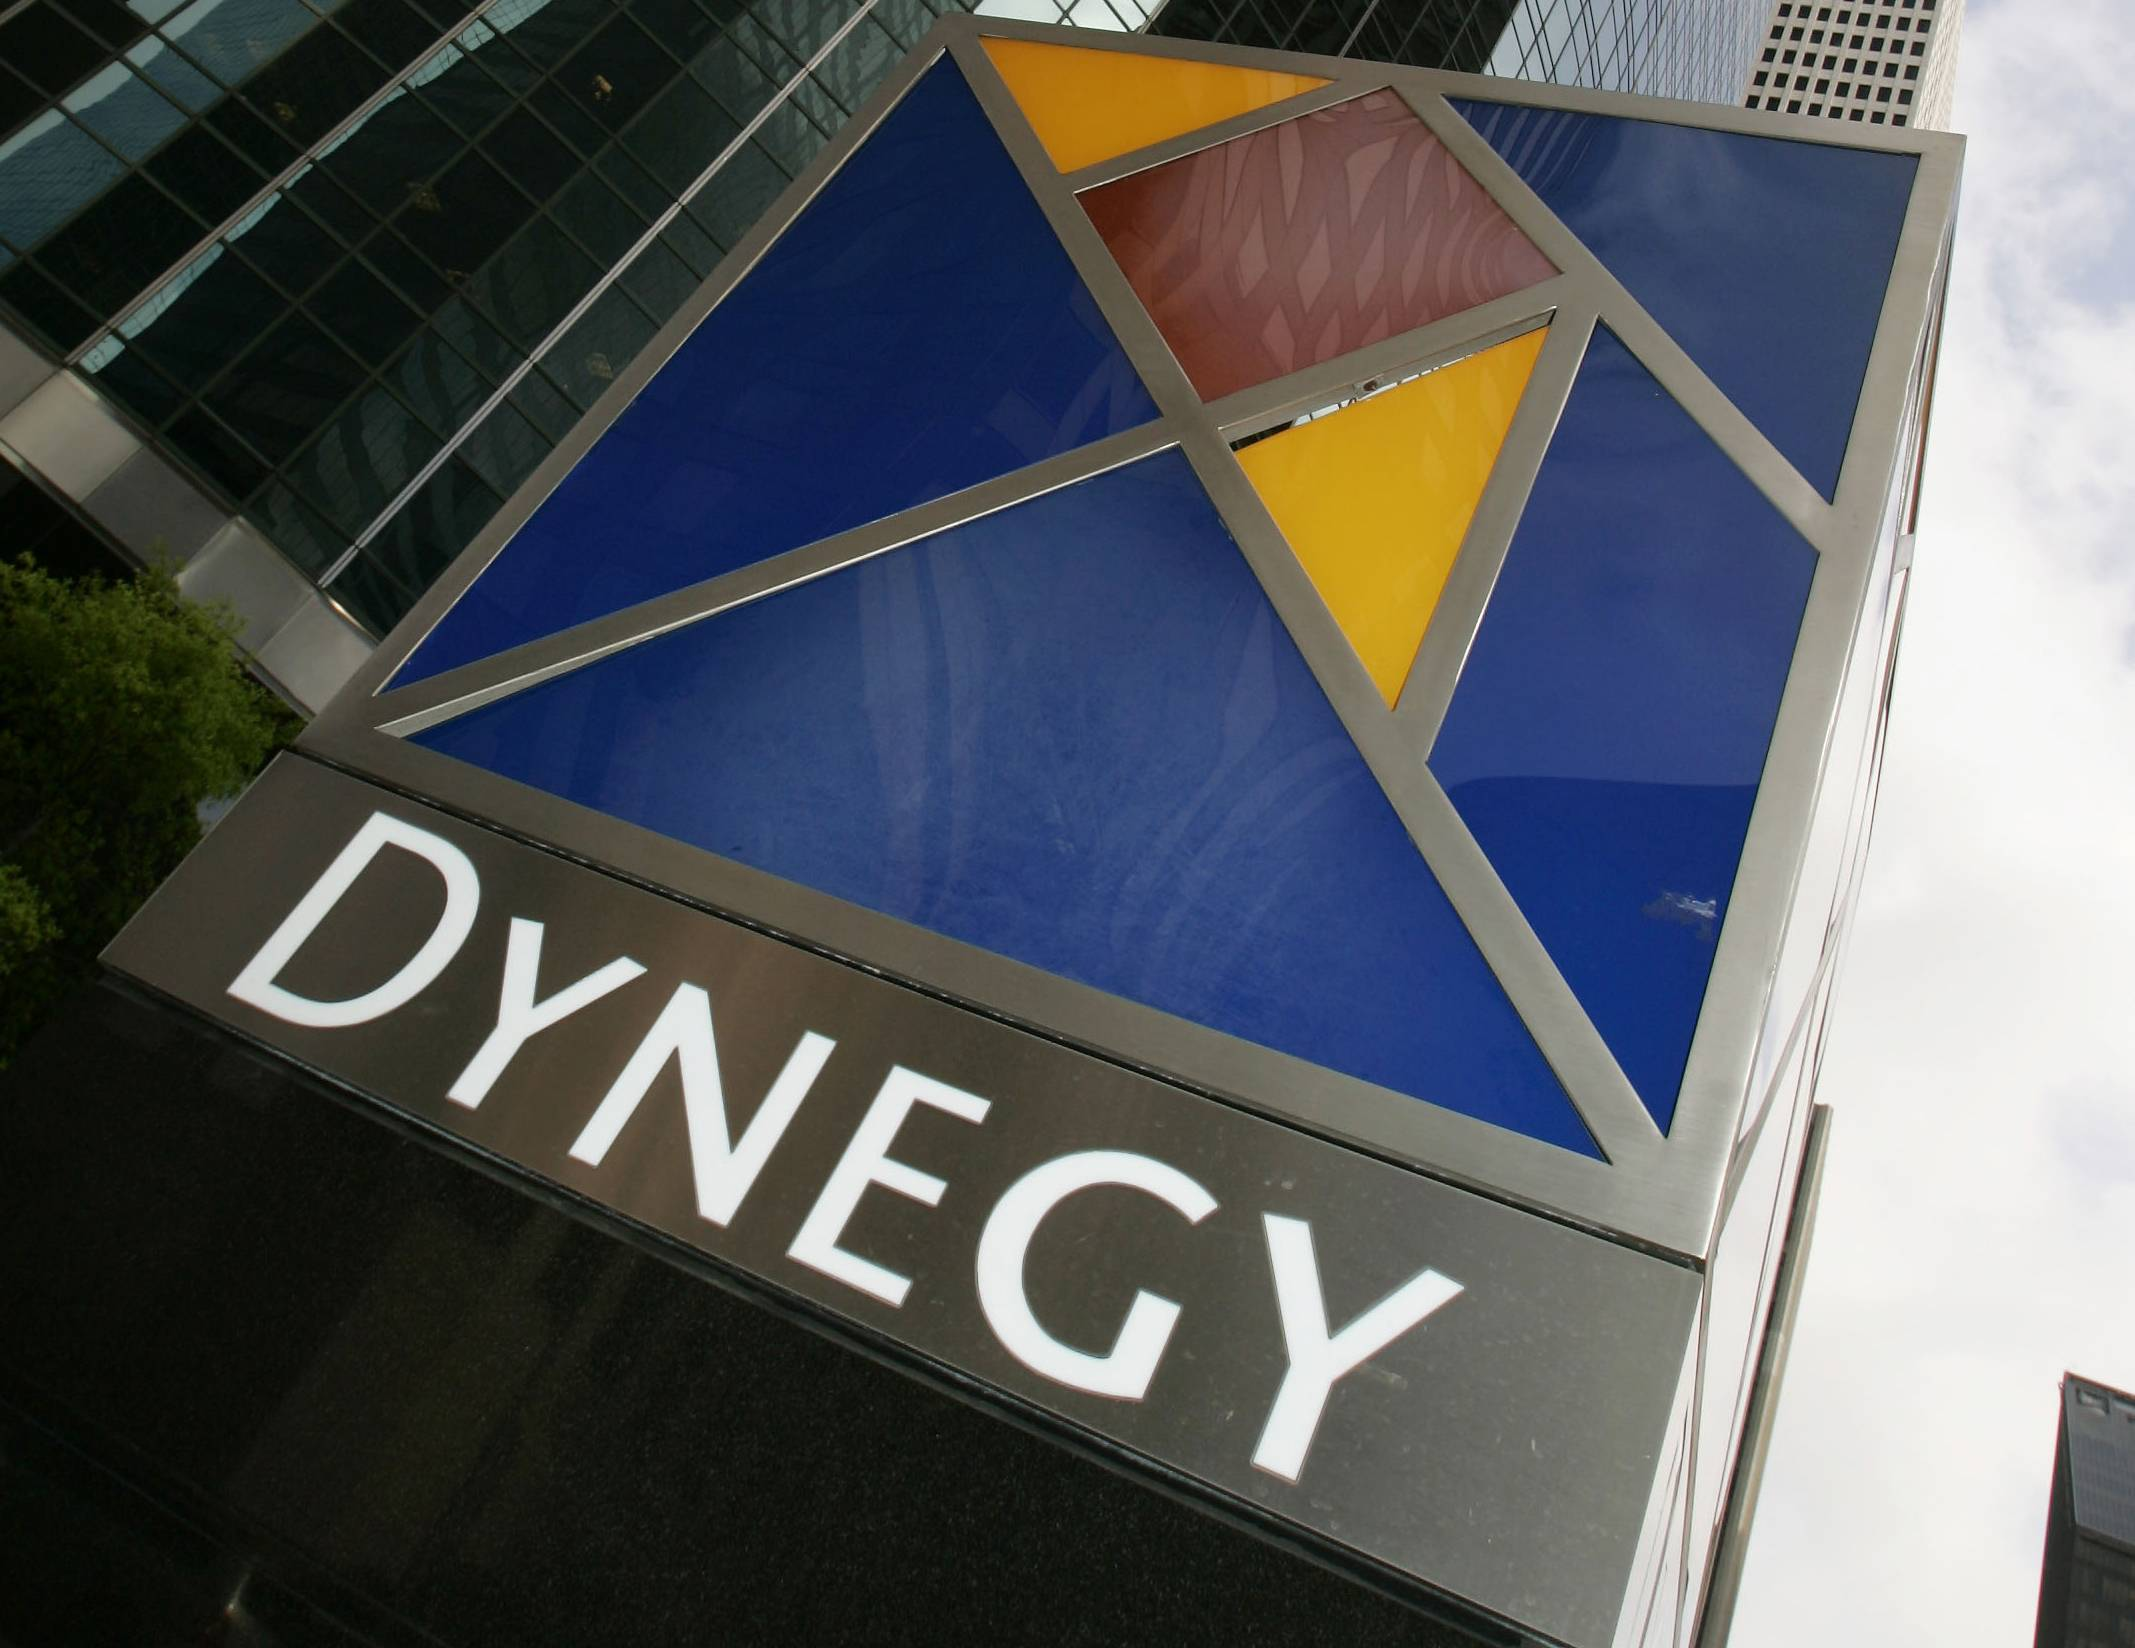 Dynegy on Friday, Aug. 22, 2014 announced plans to spend more than $6 billion to buy several coal and gas power generation plants from Duke Energy and Energy Capital Partners.